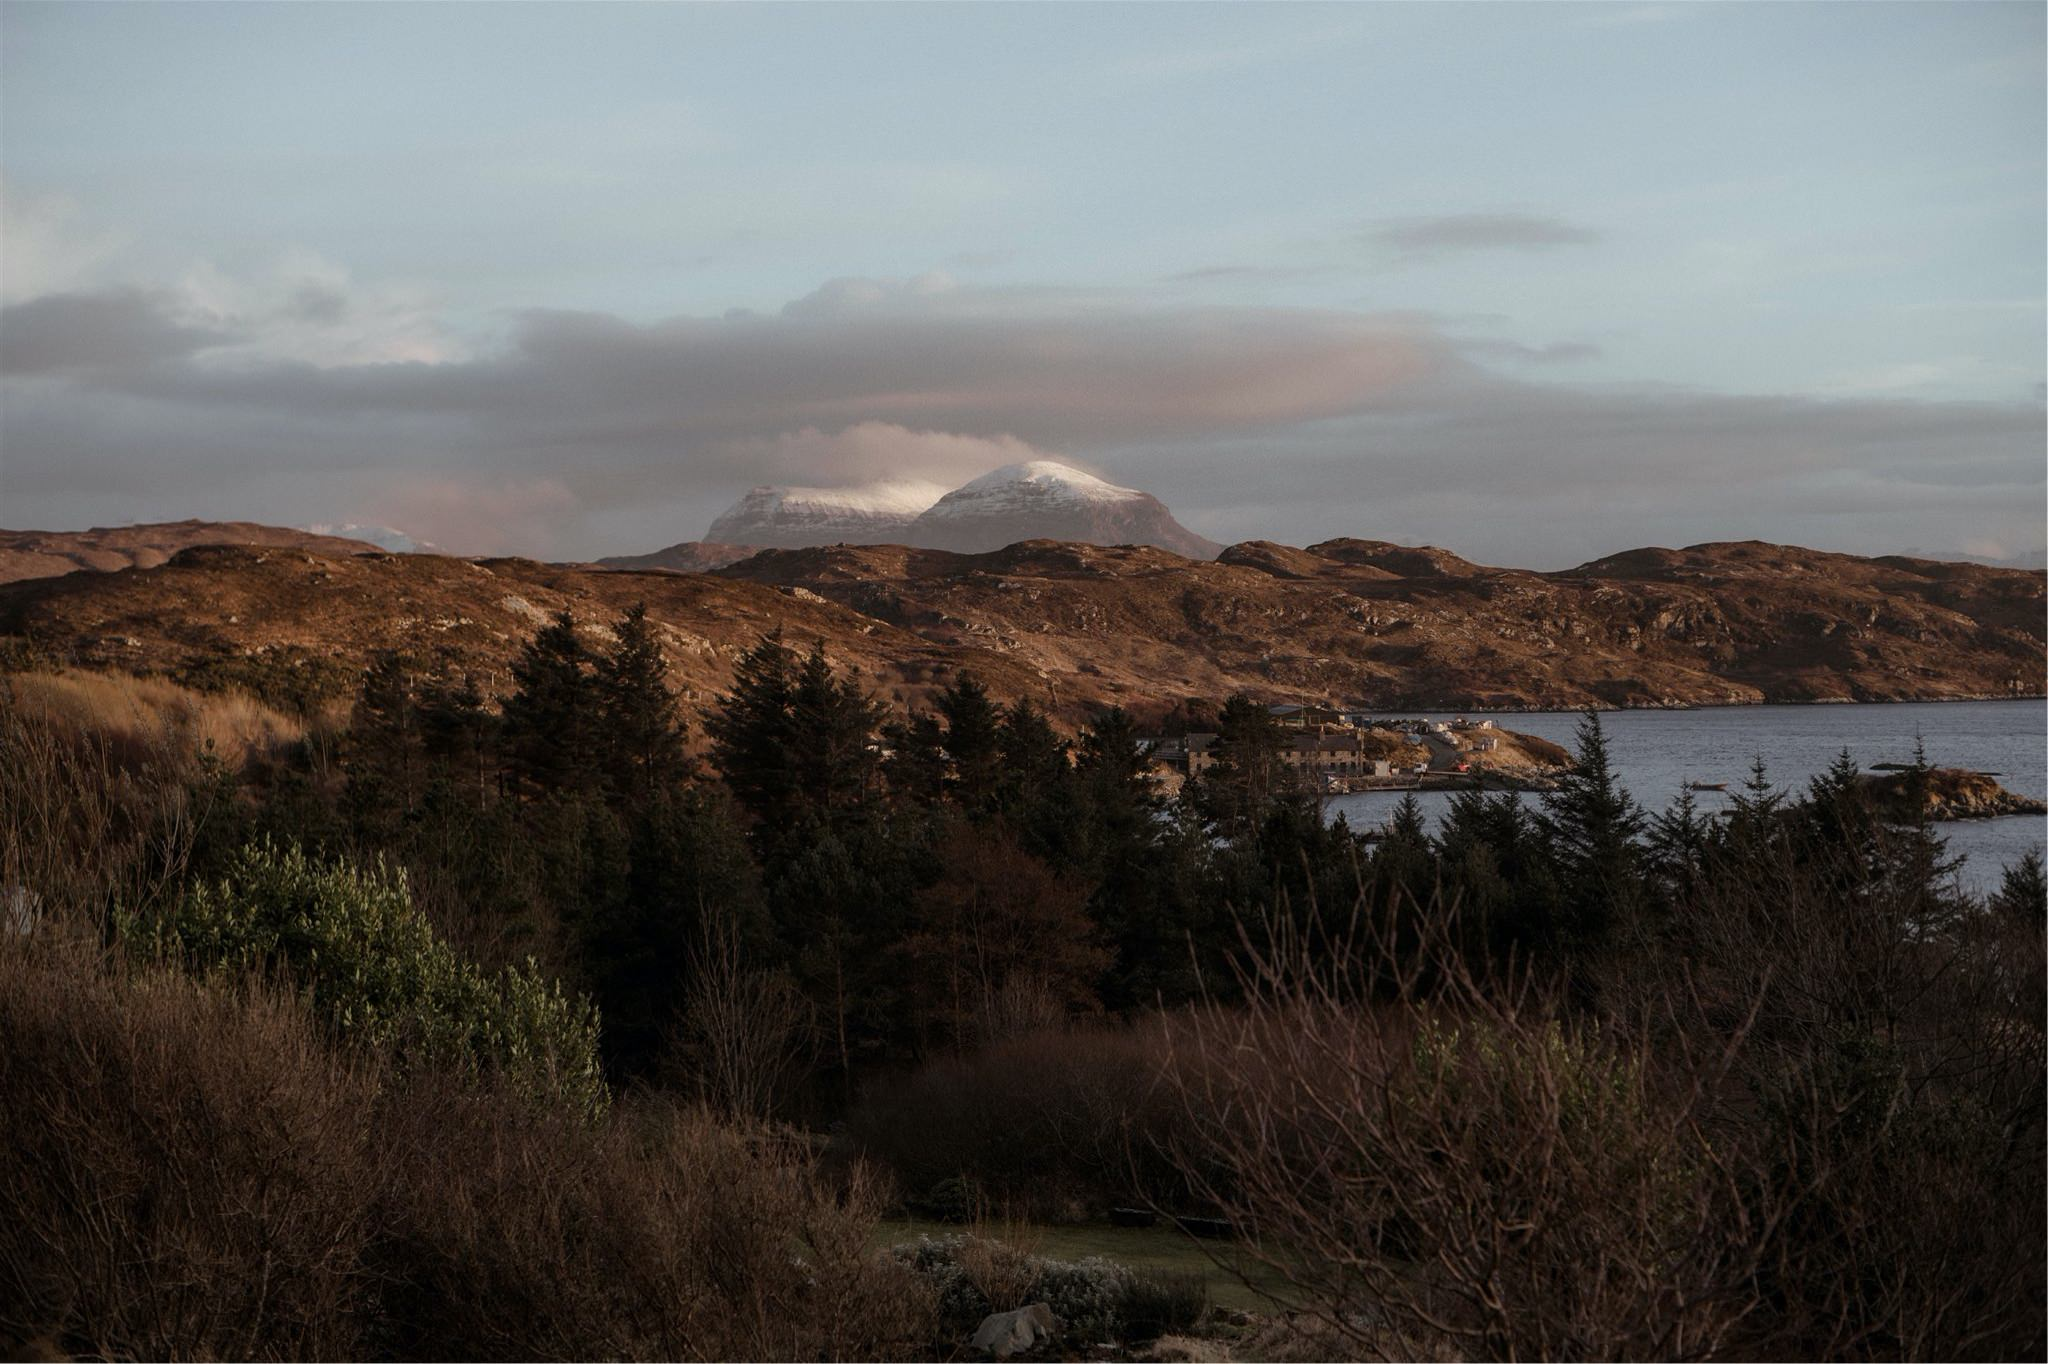 Mountain views in Assynt, Scotland - on the North Coast 500